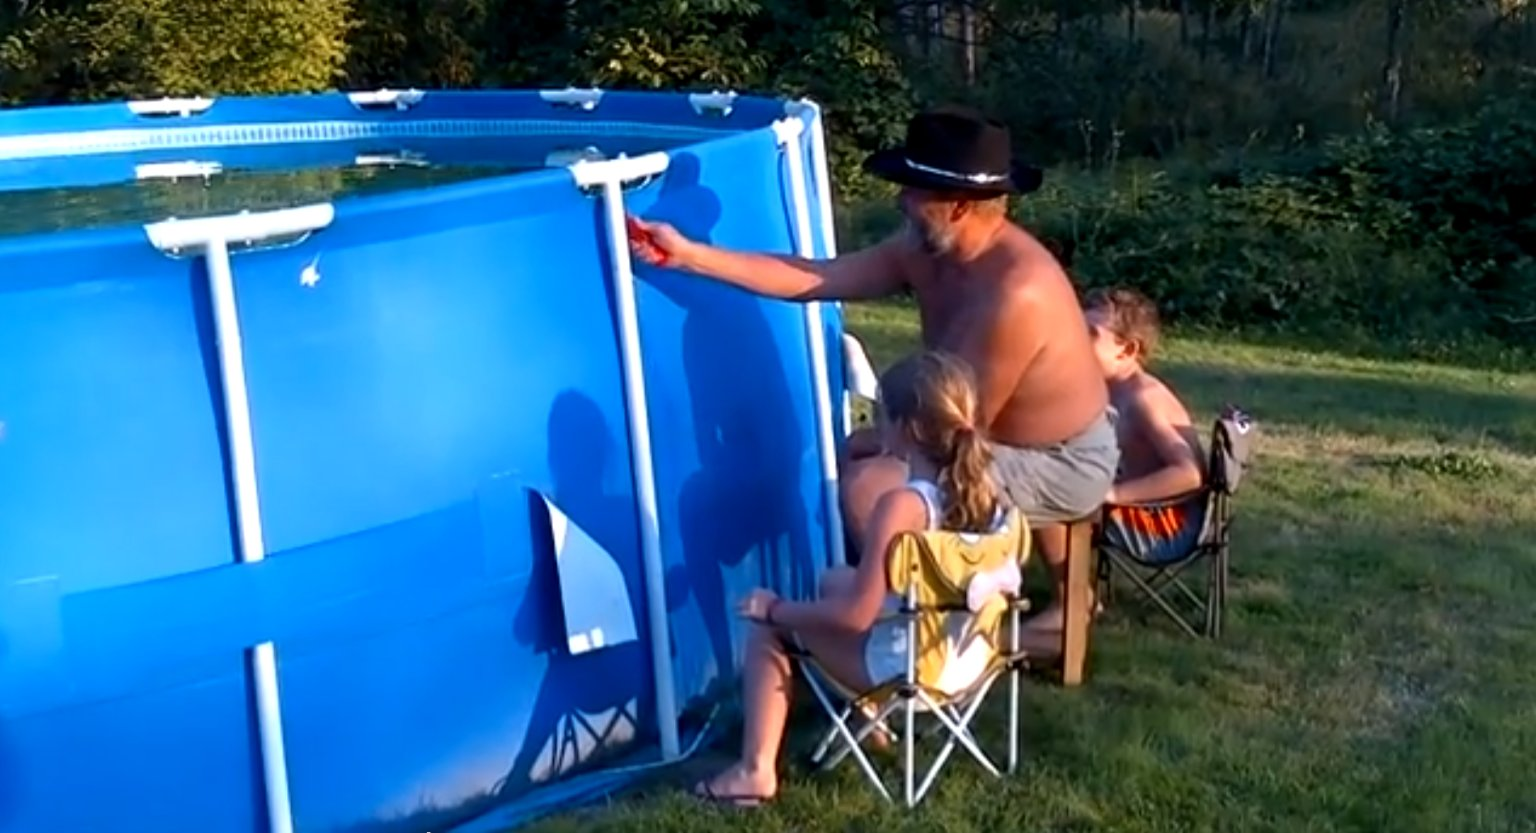 o-HOW-TO-EMPTY-SWIMMING-POOL-facebook